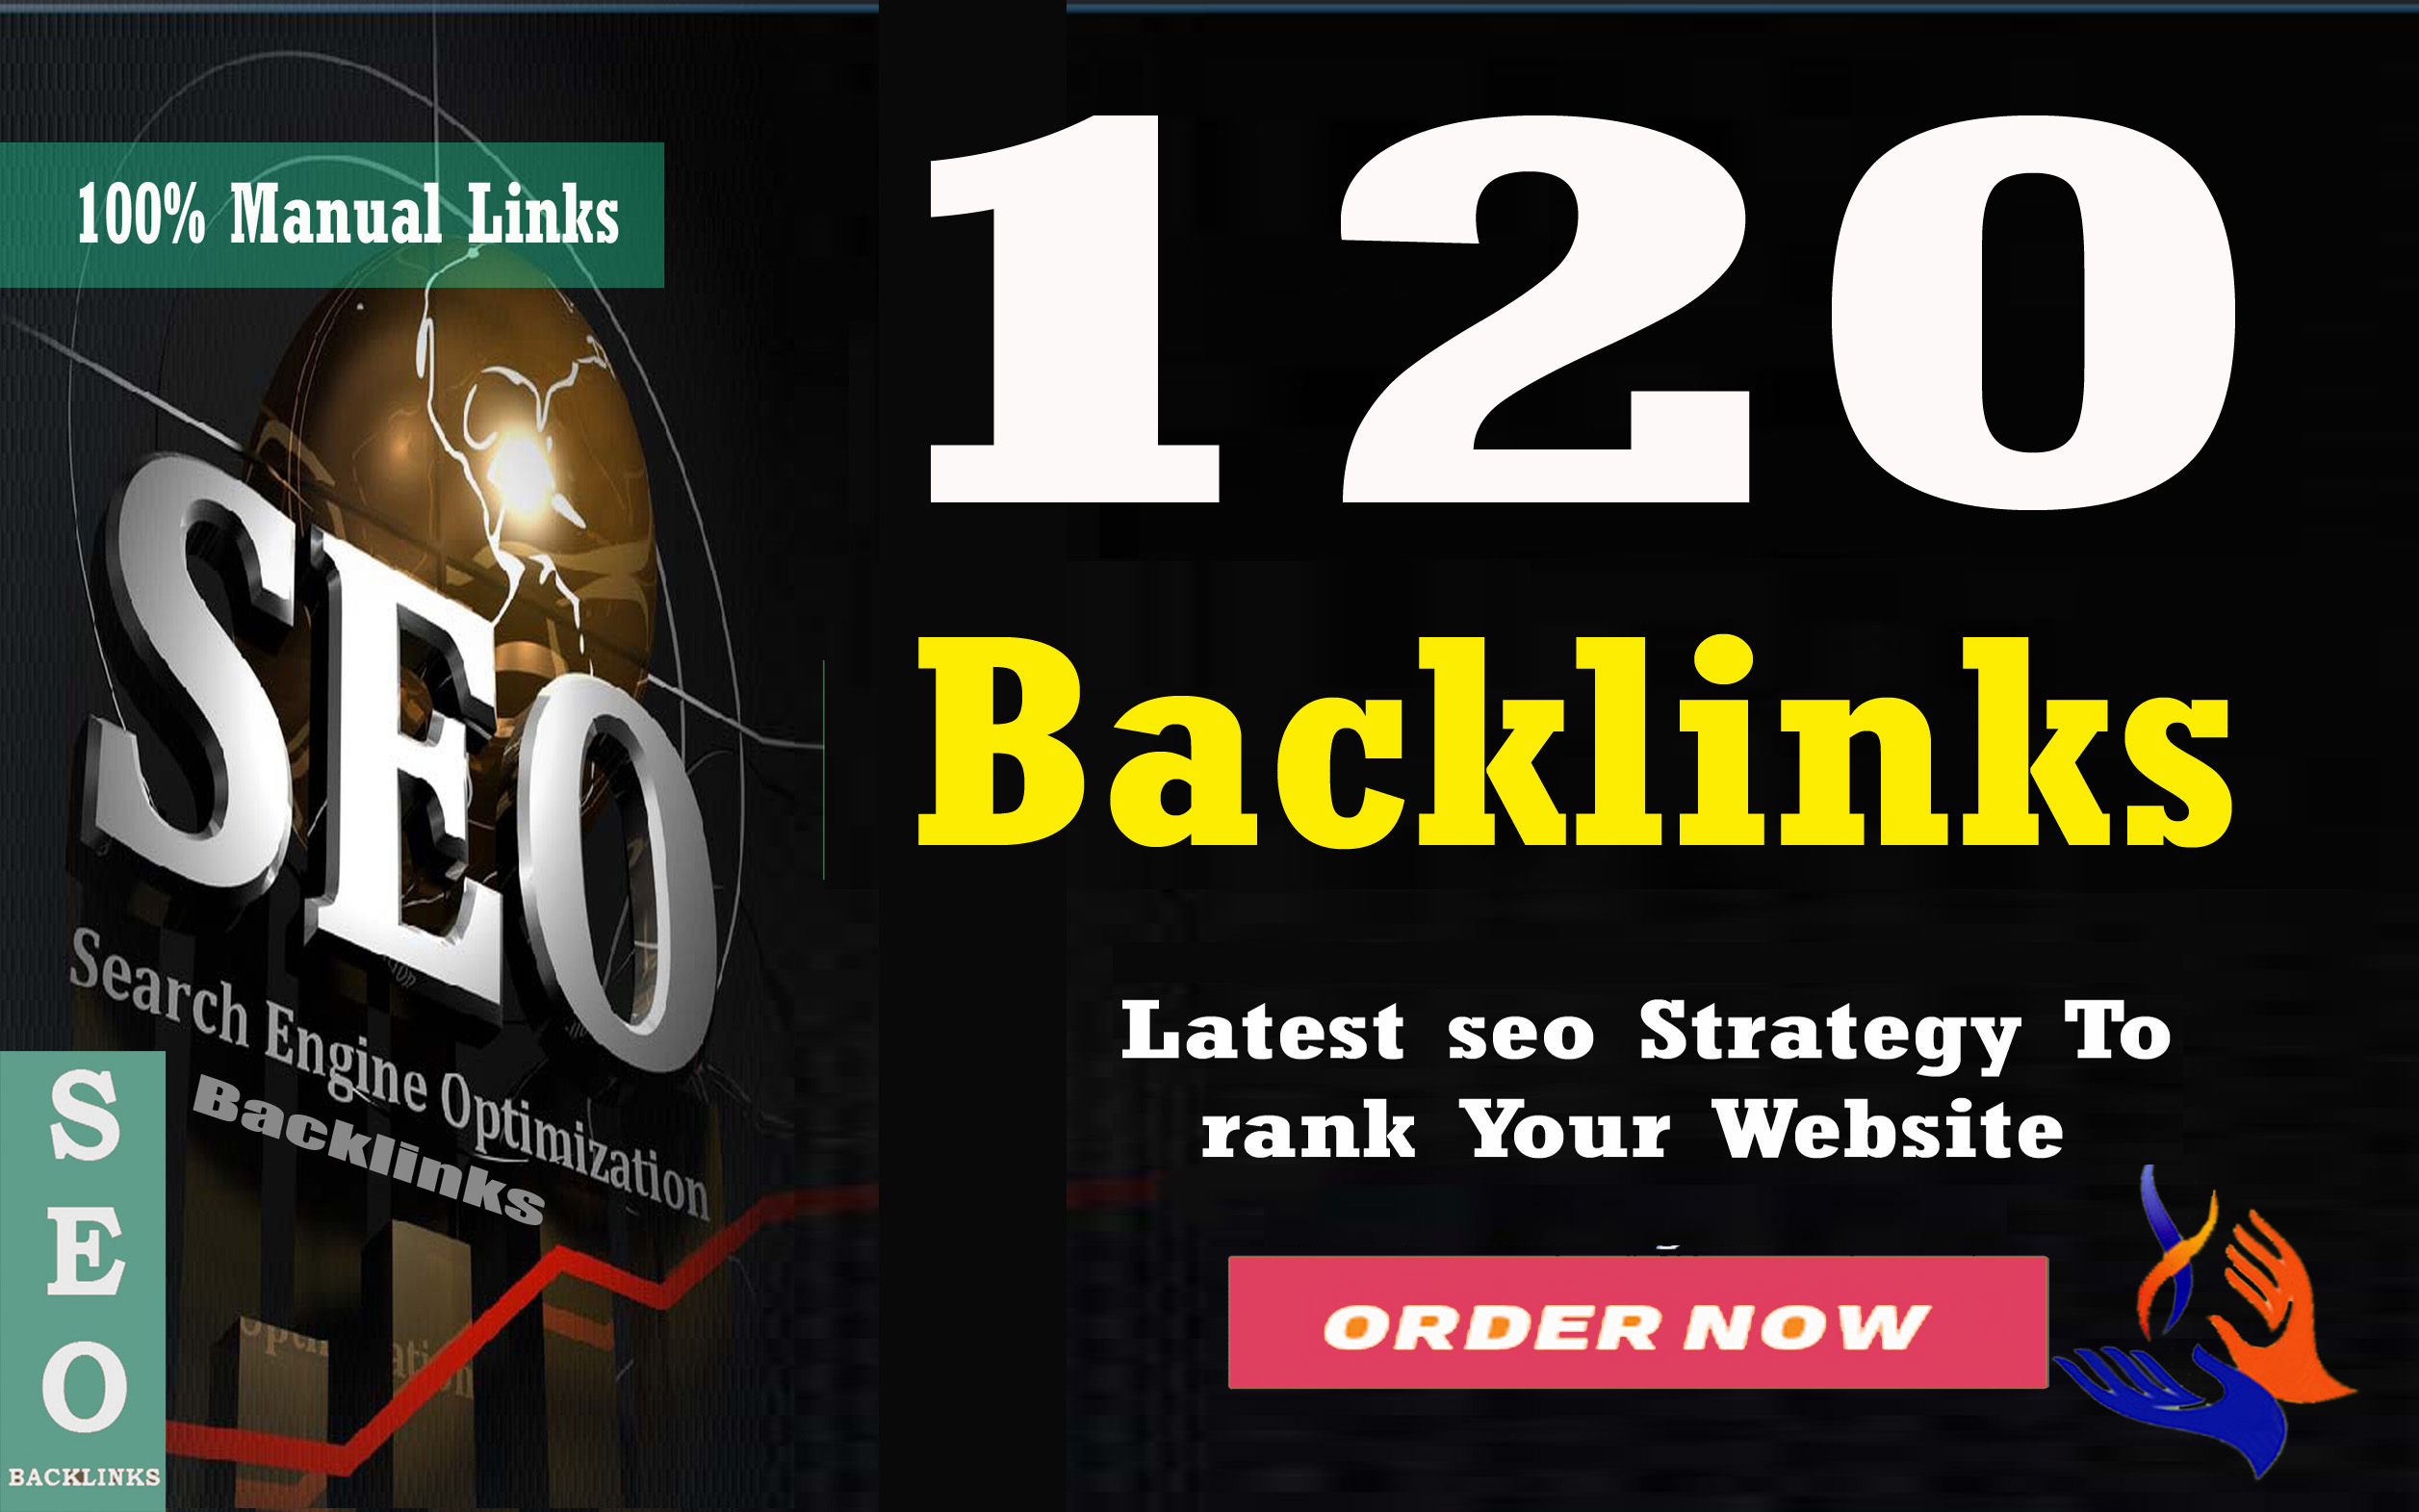 Build up 120 HomePage PBN Backlinks All Dofollow High Quality Backlinks